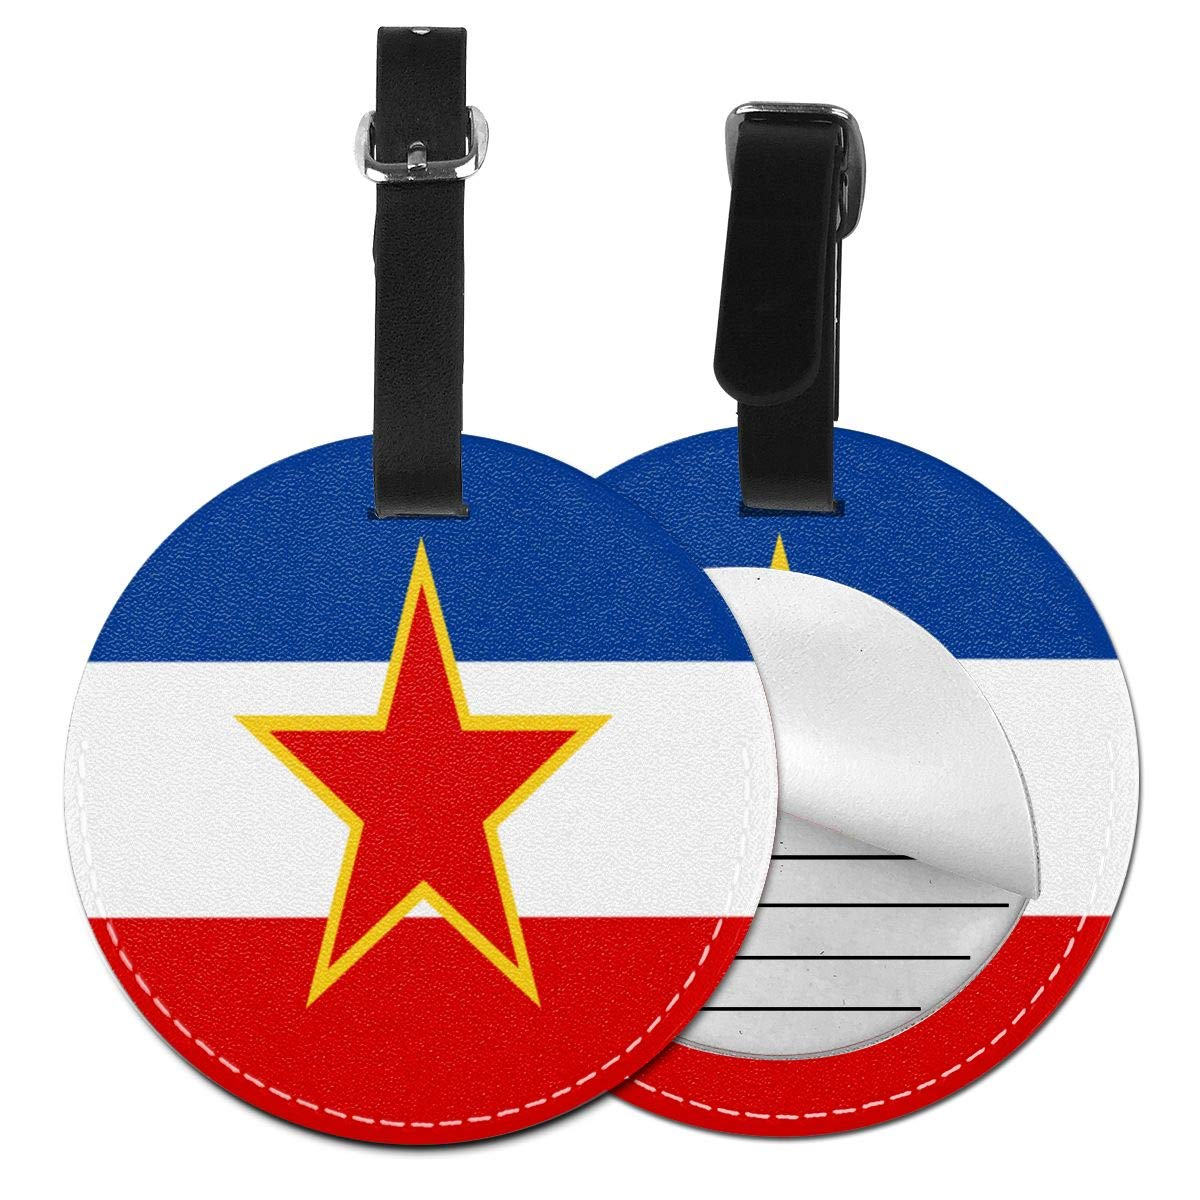 Hs8weyhfffFFF Luggage Tag Round Yugoslavia Flag Leather Luggage Bag Label Privacy Cover Business Travel Bag Label